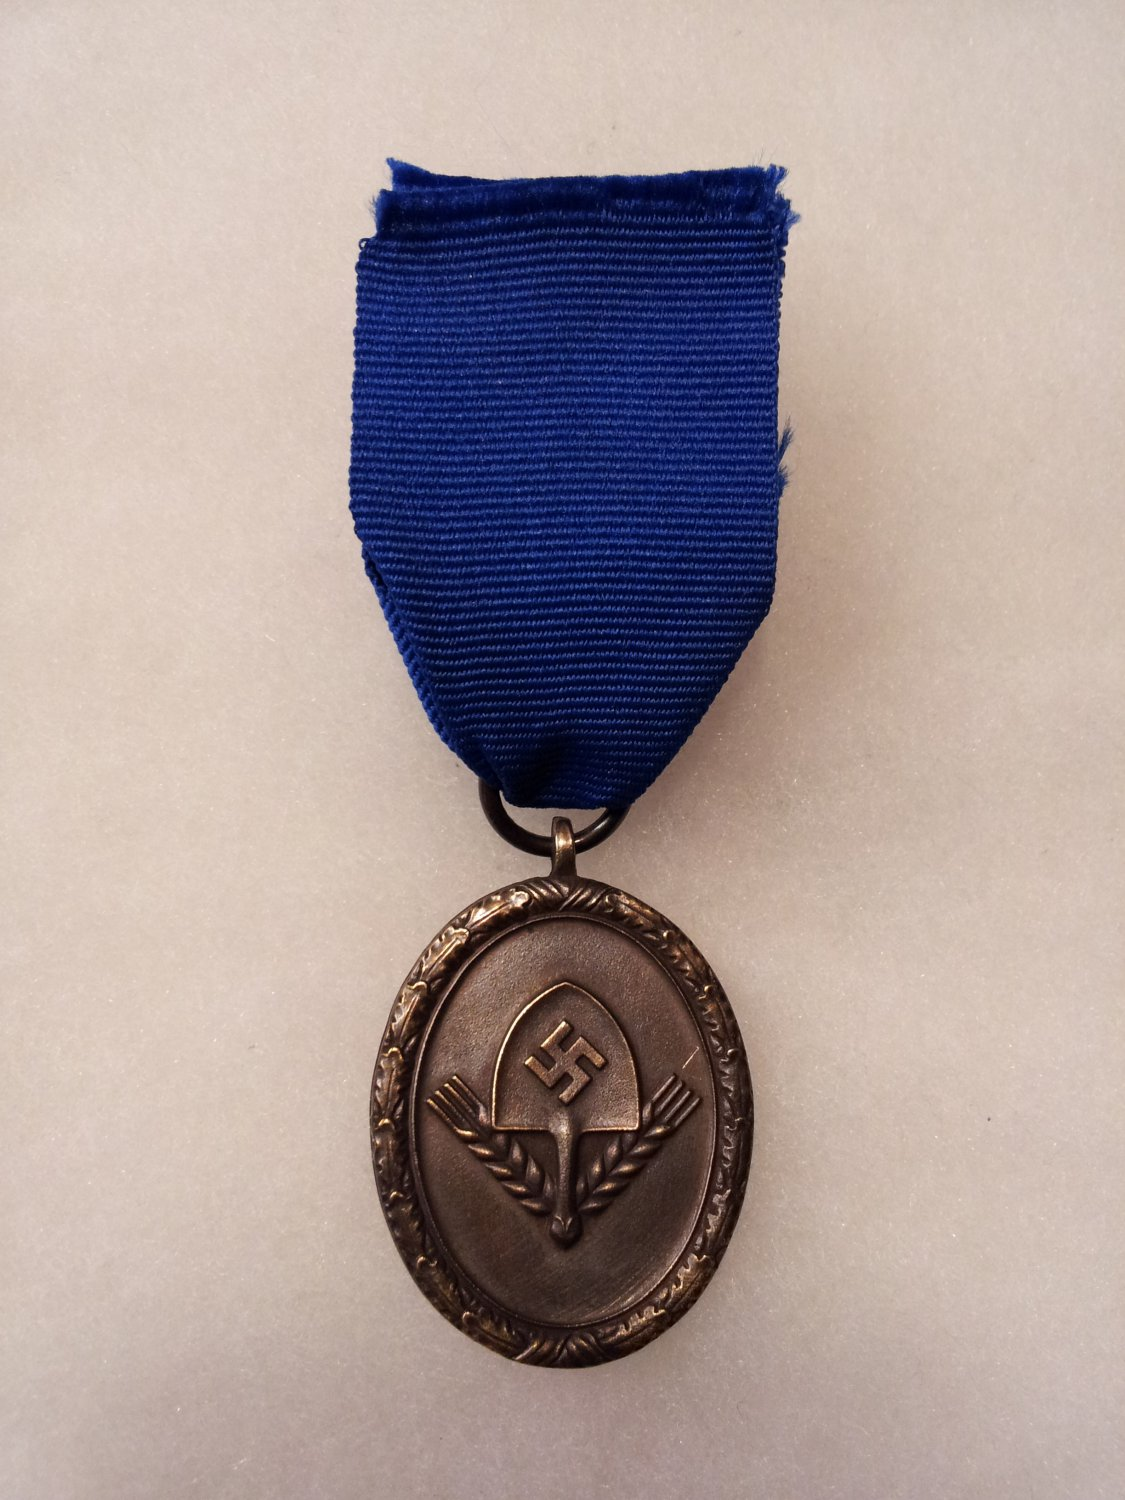 WWII GERMAN RAD LONG SERVICE MEDAL